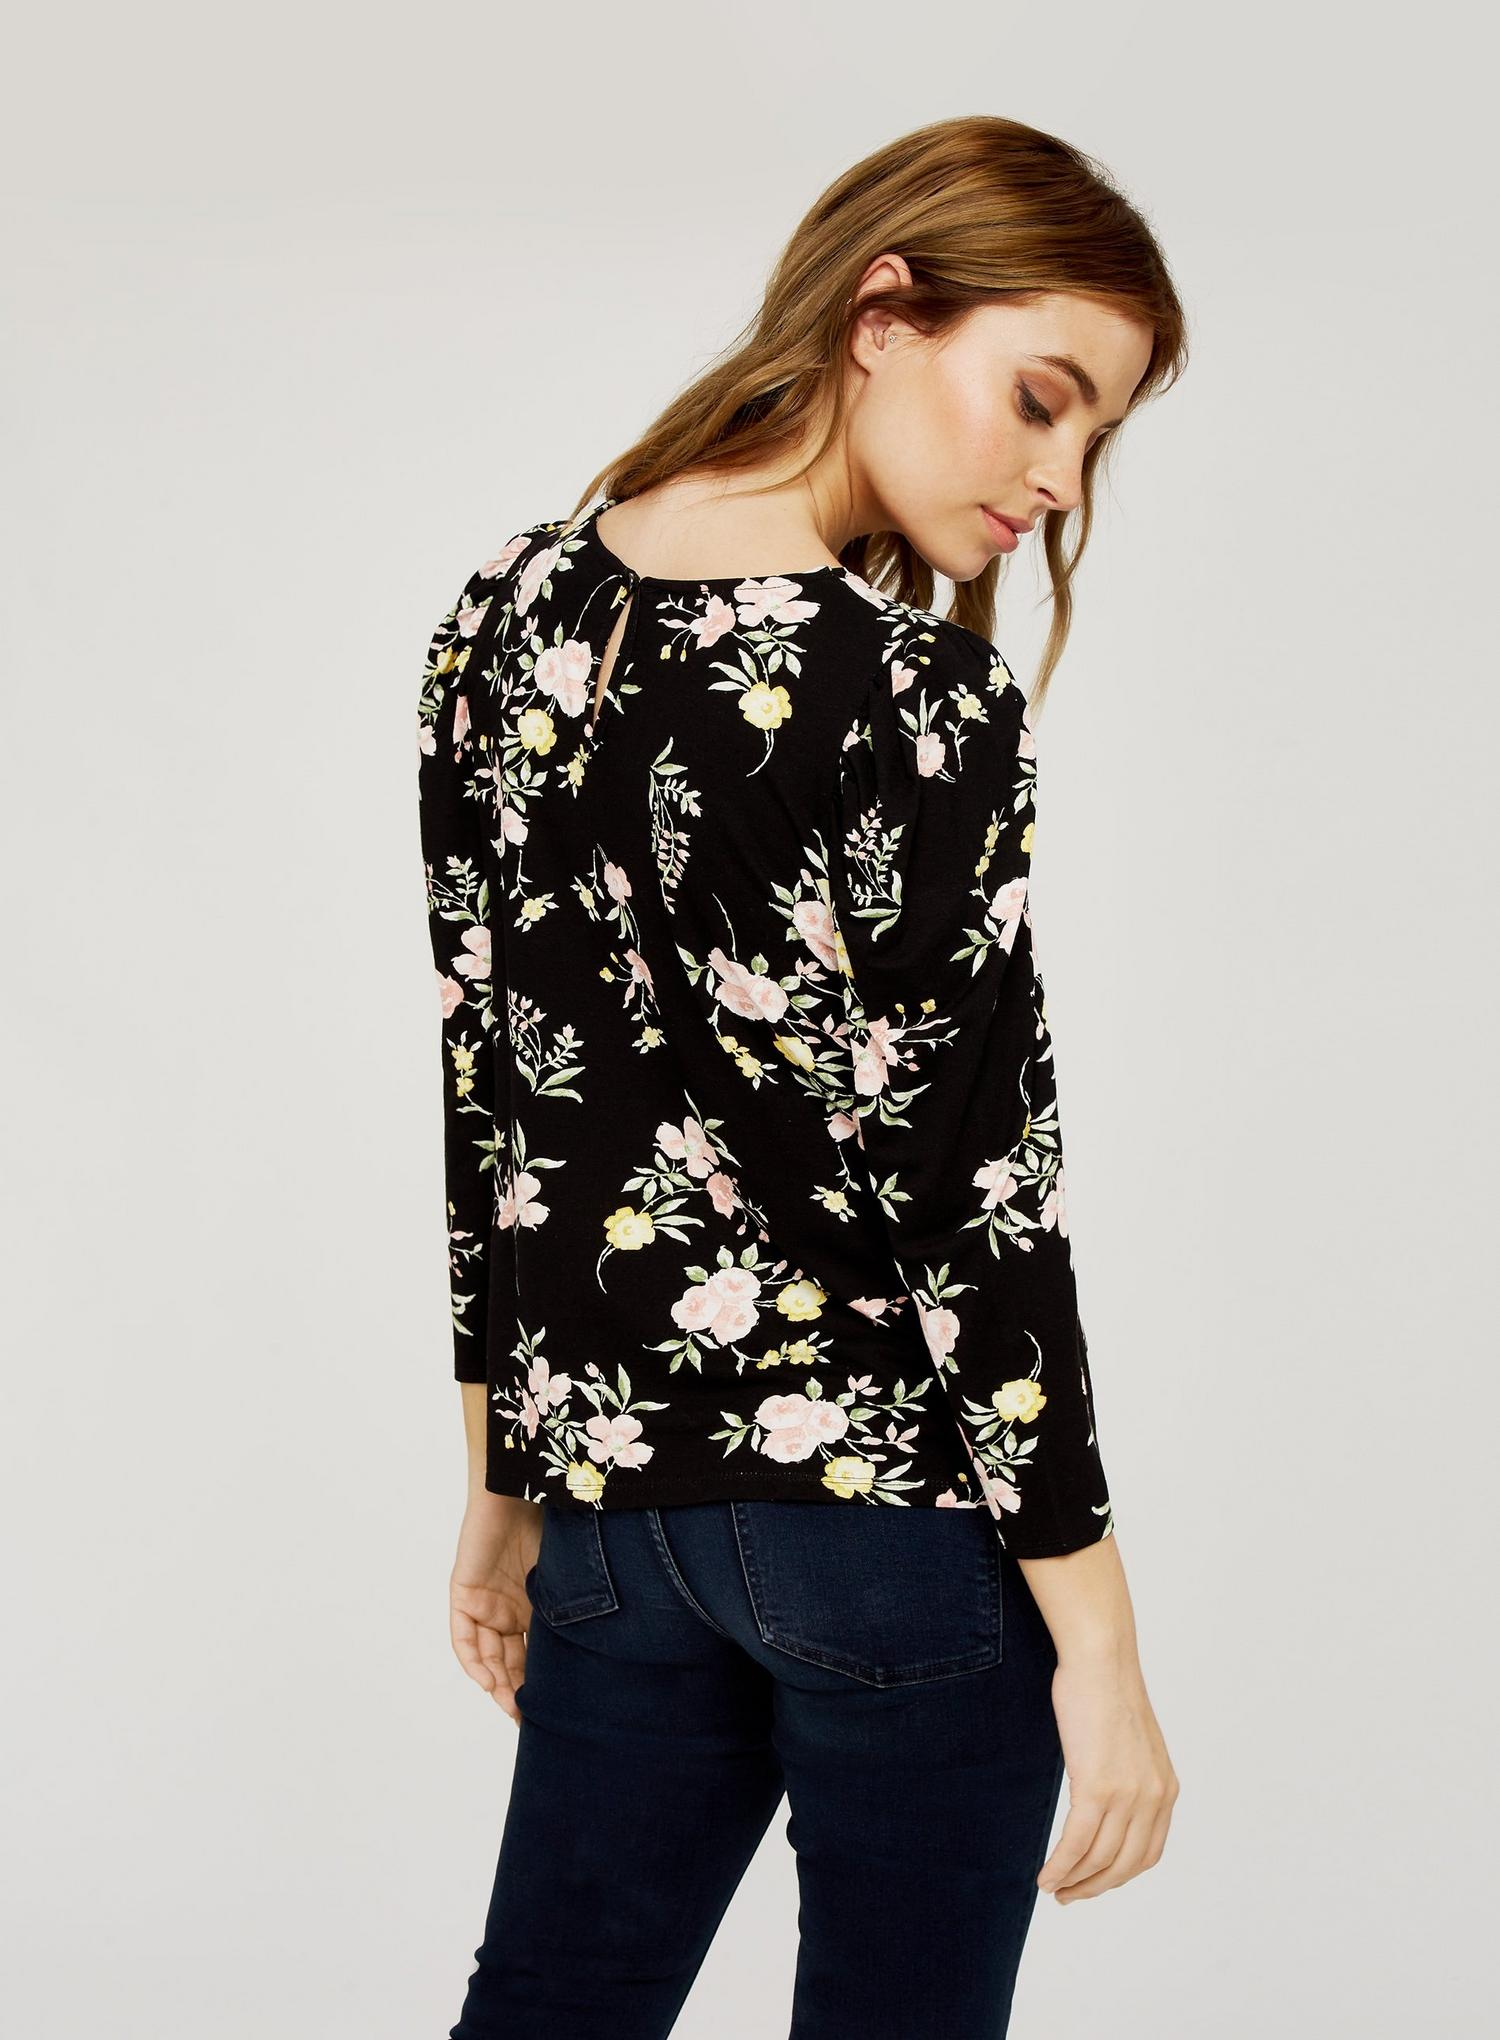 105 Petite Black Floral Print Top image number 2